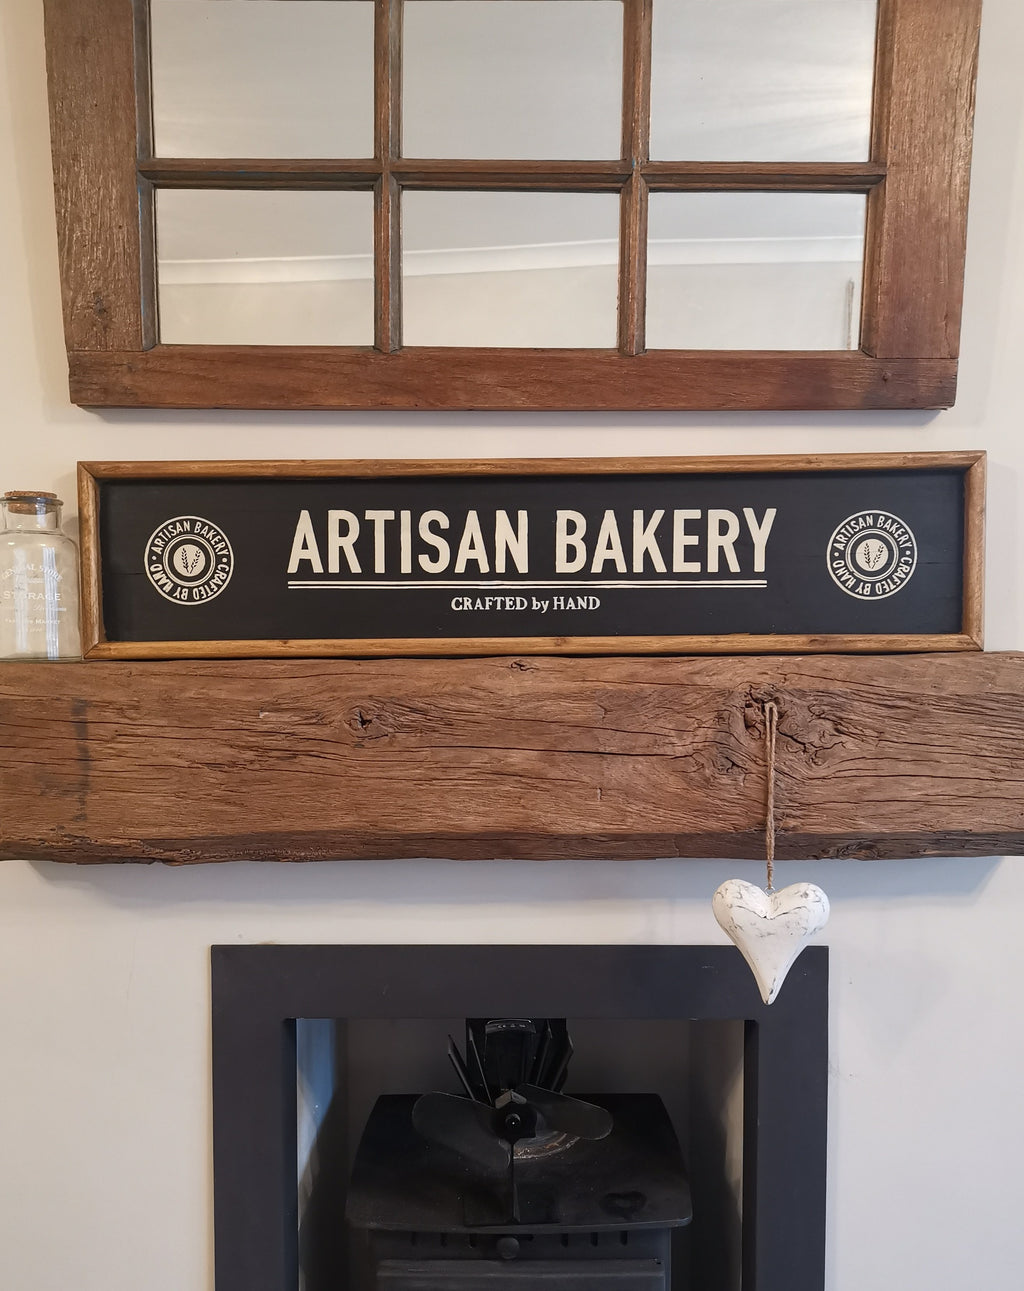 Rustic Artisan Bakery Sign - The Burrow Interiors